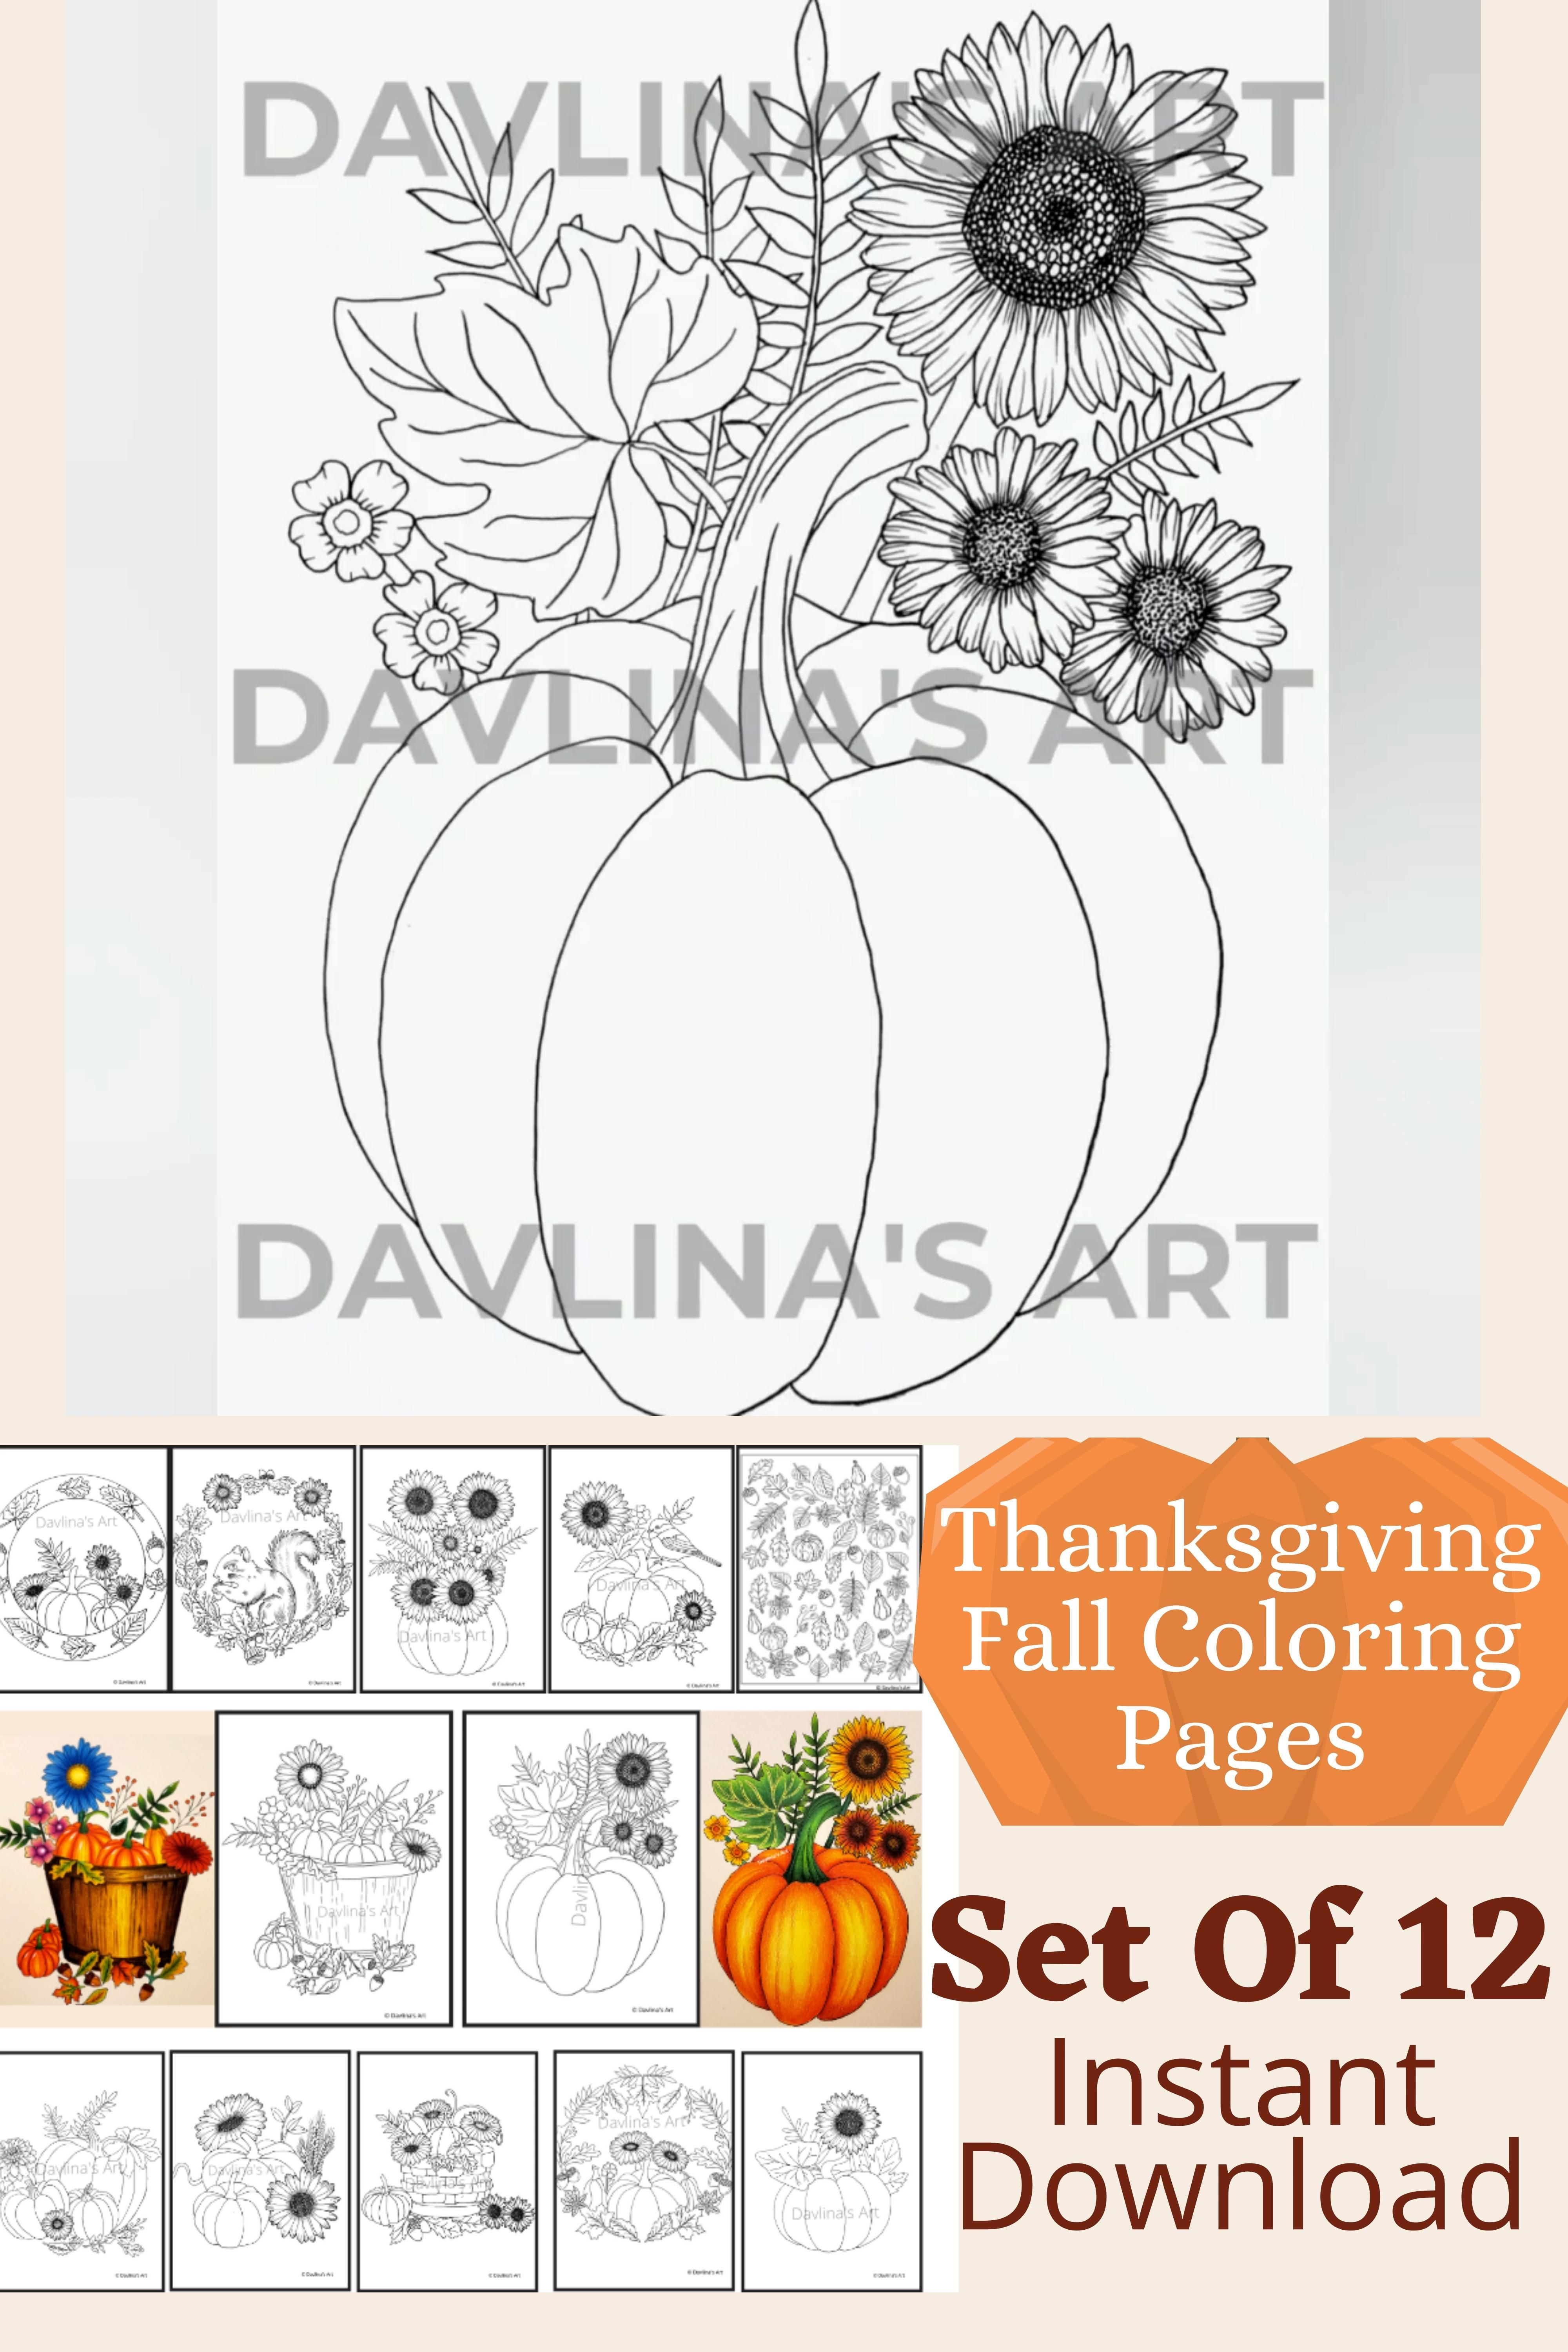 Set Of 12 Fall Printable Coloring Pages For Adults And Etsy Video Video In 2020 Free Thanksgiving Coloring Pages Fall Coloring Pages Thanksgiving Coloring Pages [ 6000 x 4000 Pixel ]